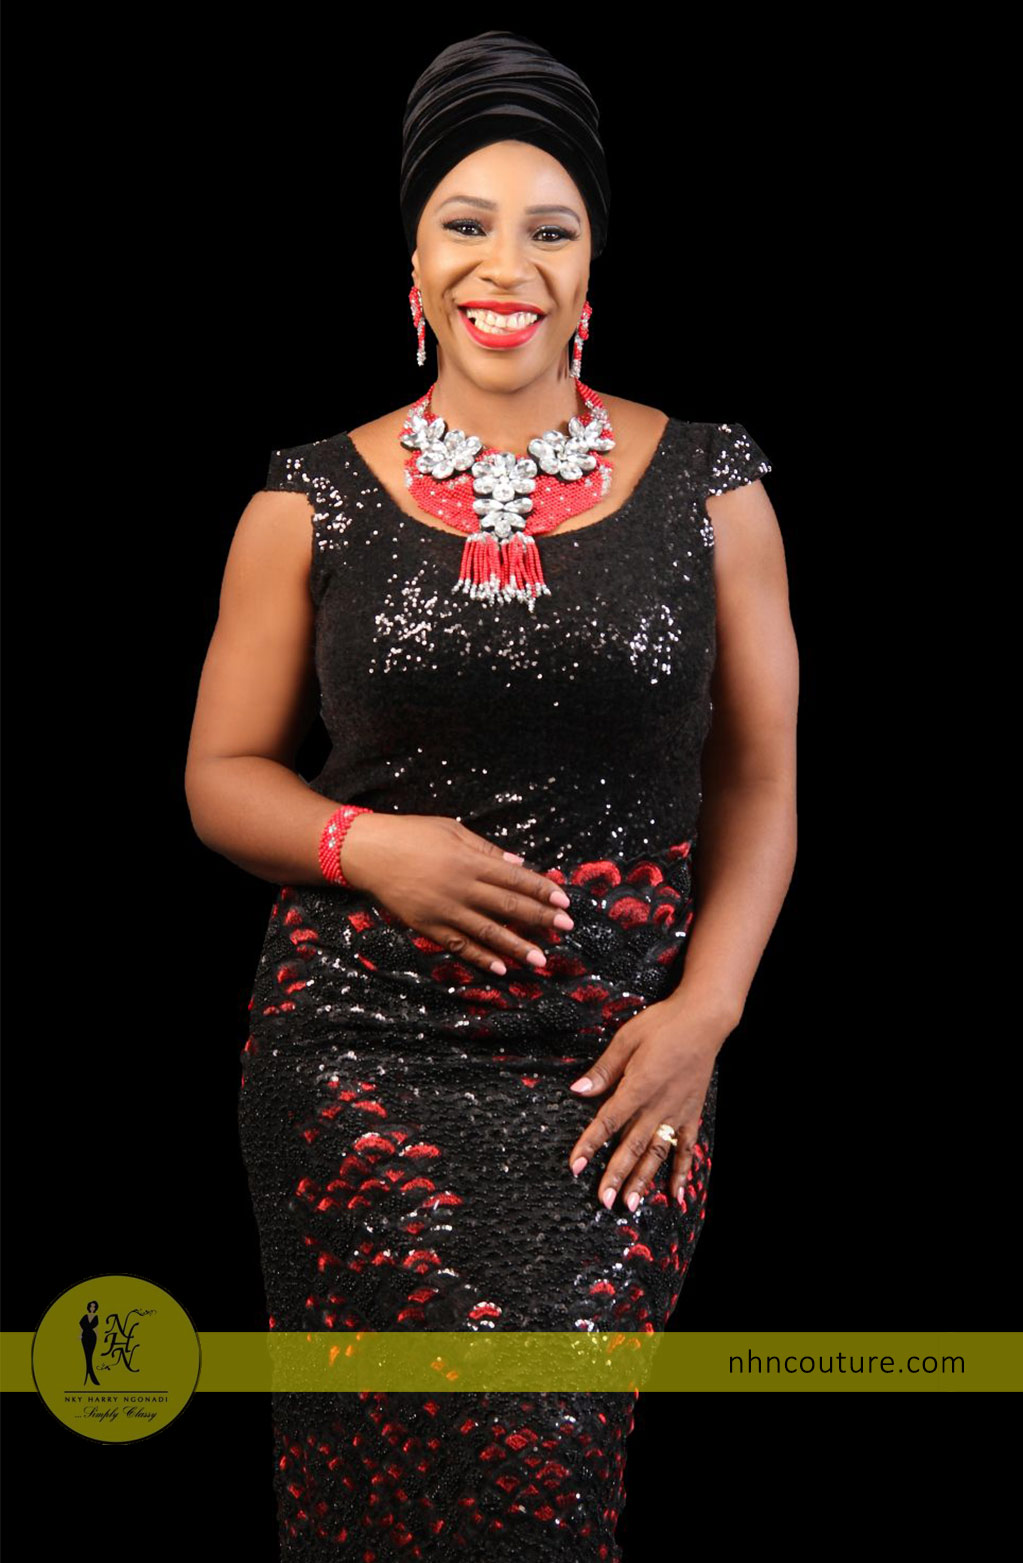 nhn-couture_dressing-with-red_asoebi-style-inspiration_5